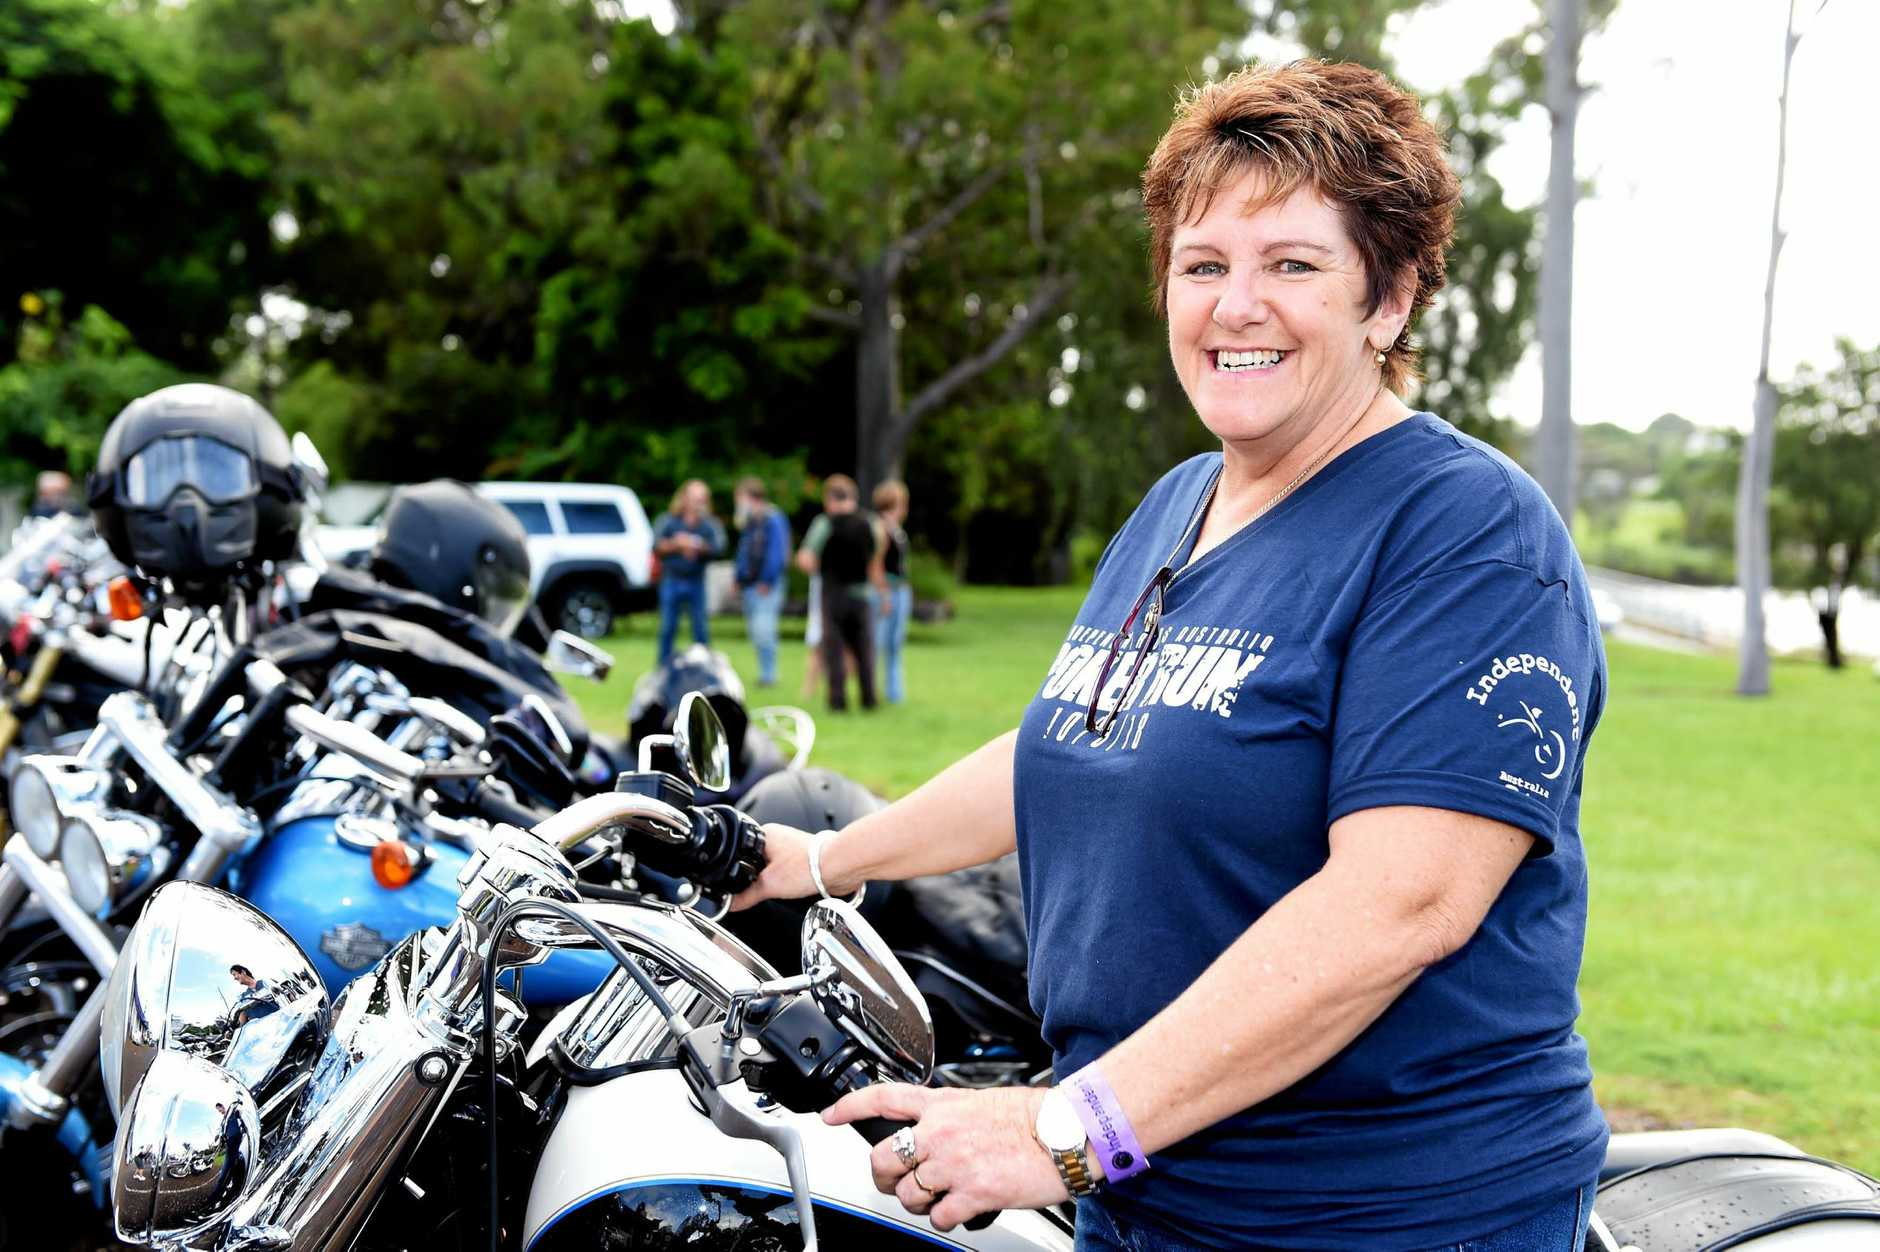 The Independant Riders, Fraser Coast Branch held the fifth annual Poker Run.  Raising money for military service care packages hits home for member, Julie Bellert. Her son, Sean, is currently deployed in Iraq.